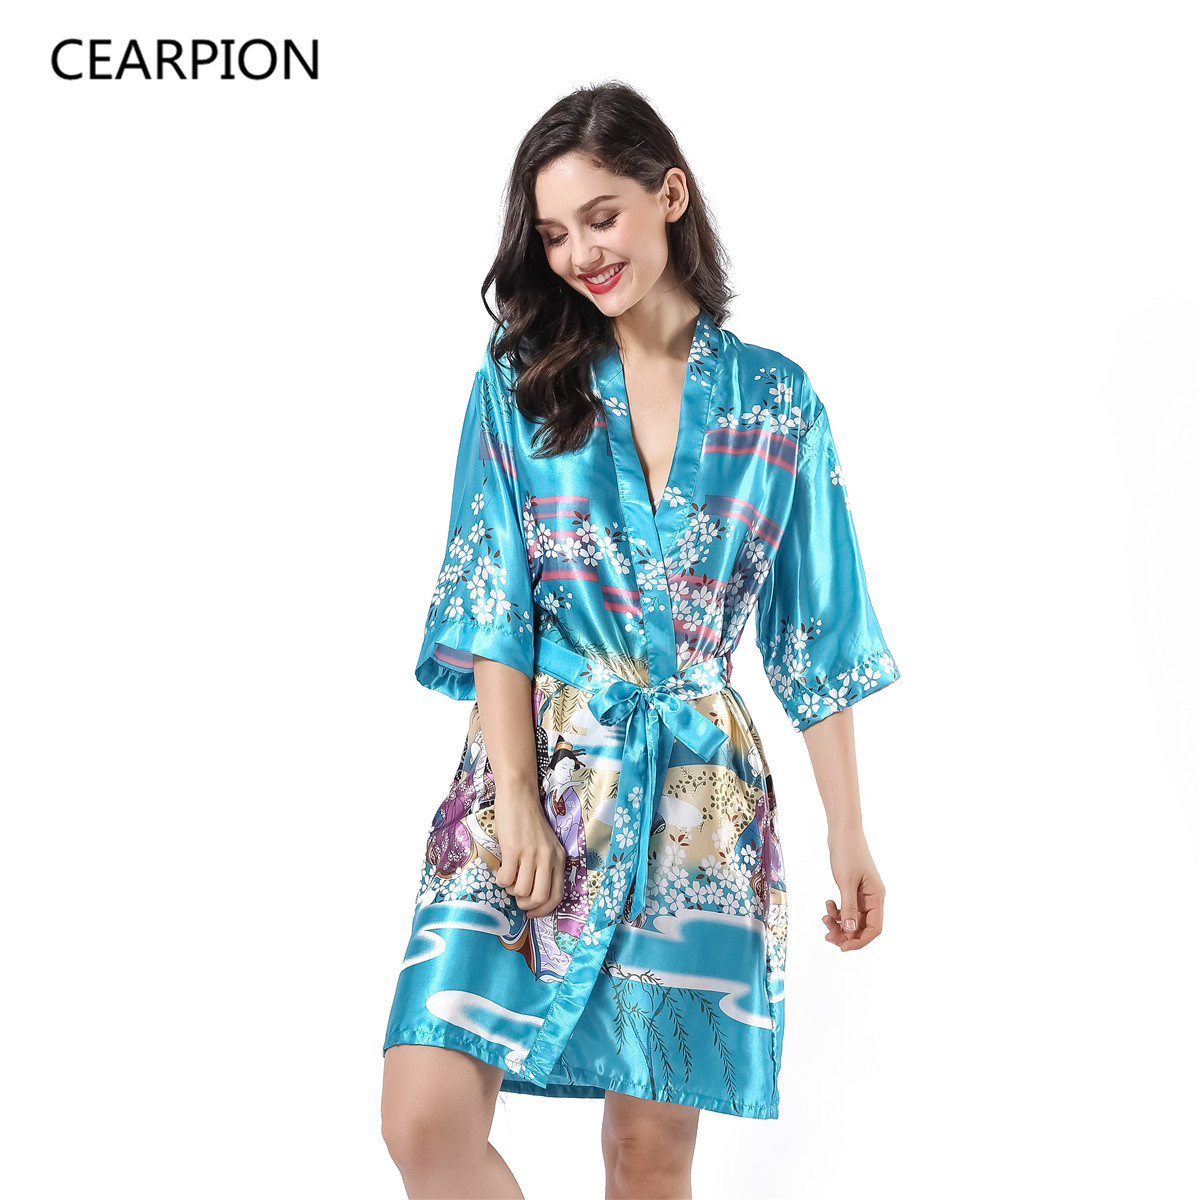 CEARTION Womens Kimono Bath Robe Gown Sexy Sleepwear Rayon Nightwear Casual Soft Home Clothes Print Floral Negligee Pajamas